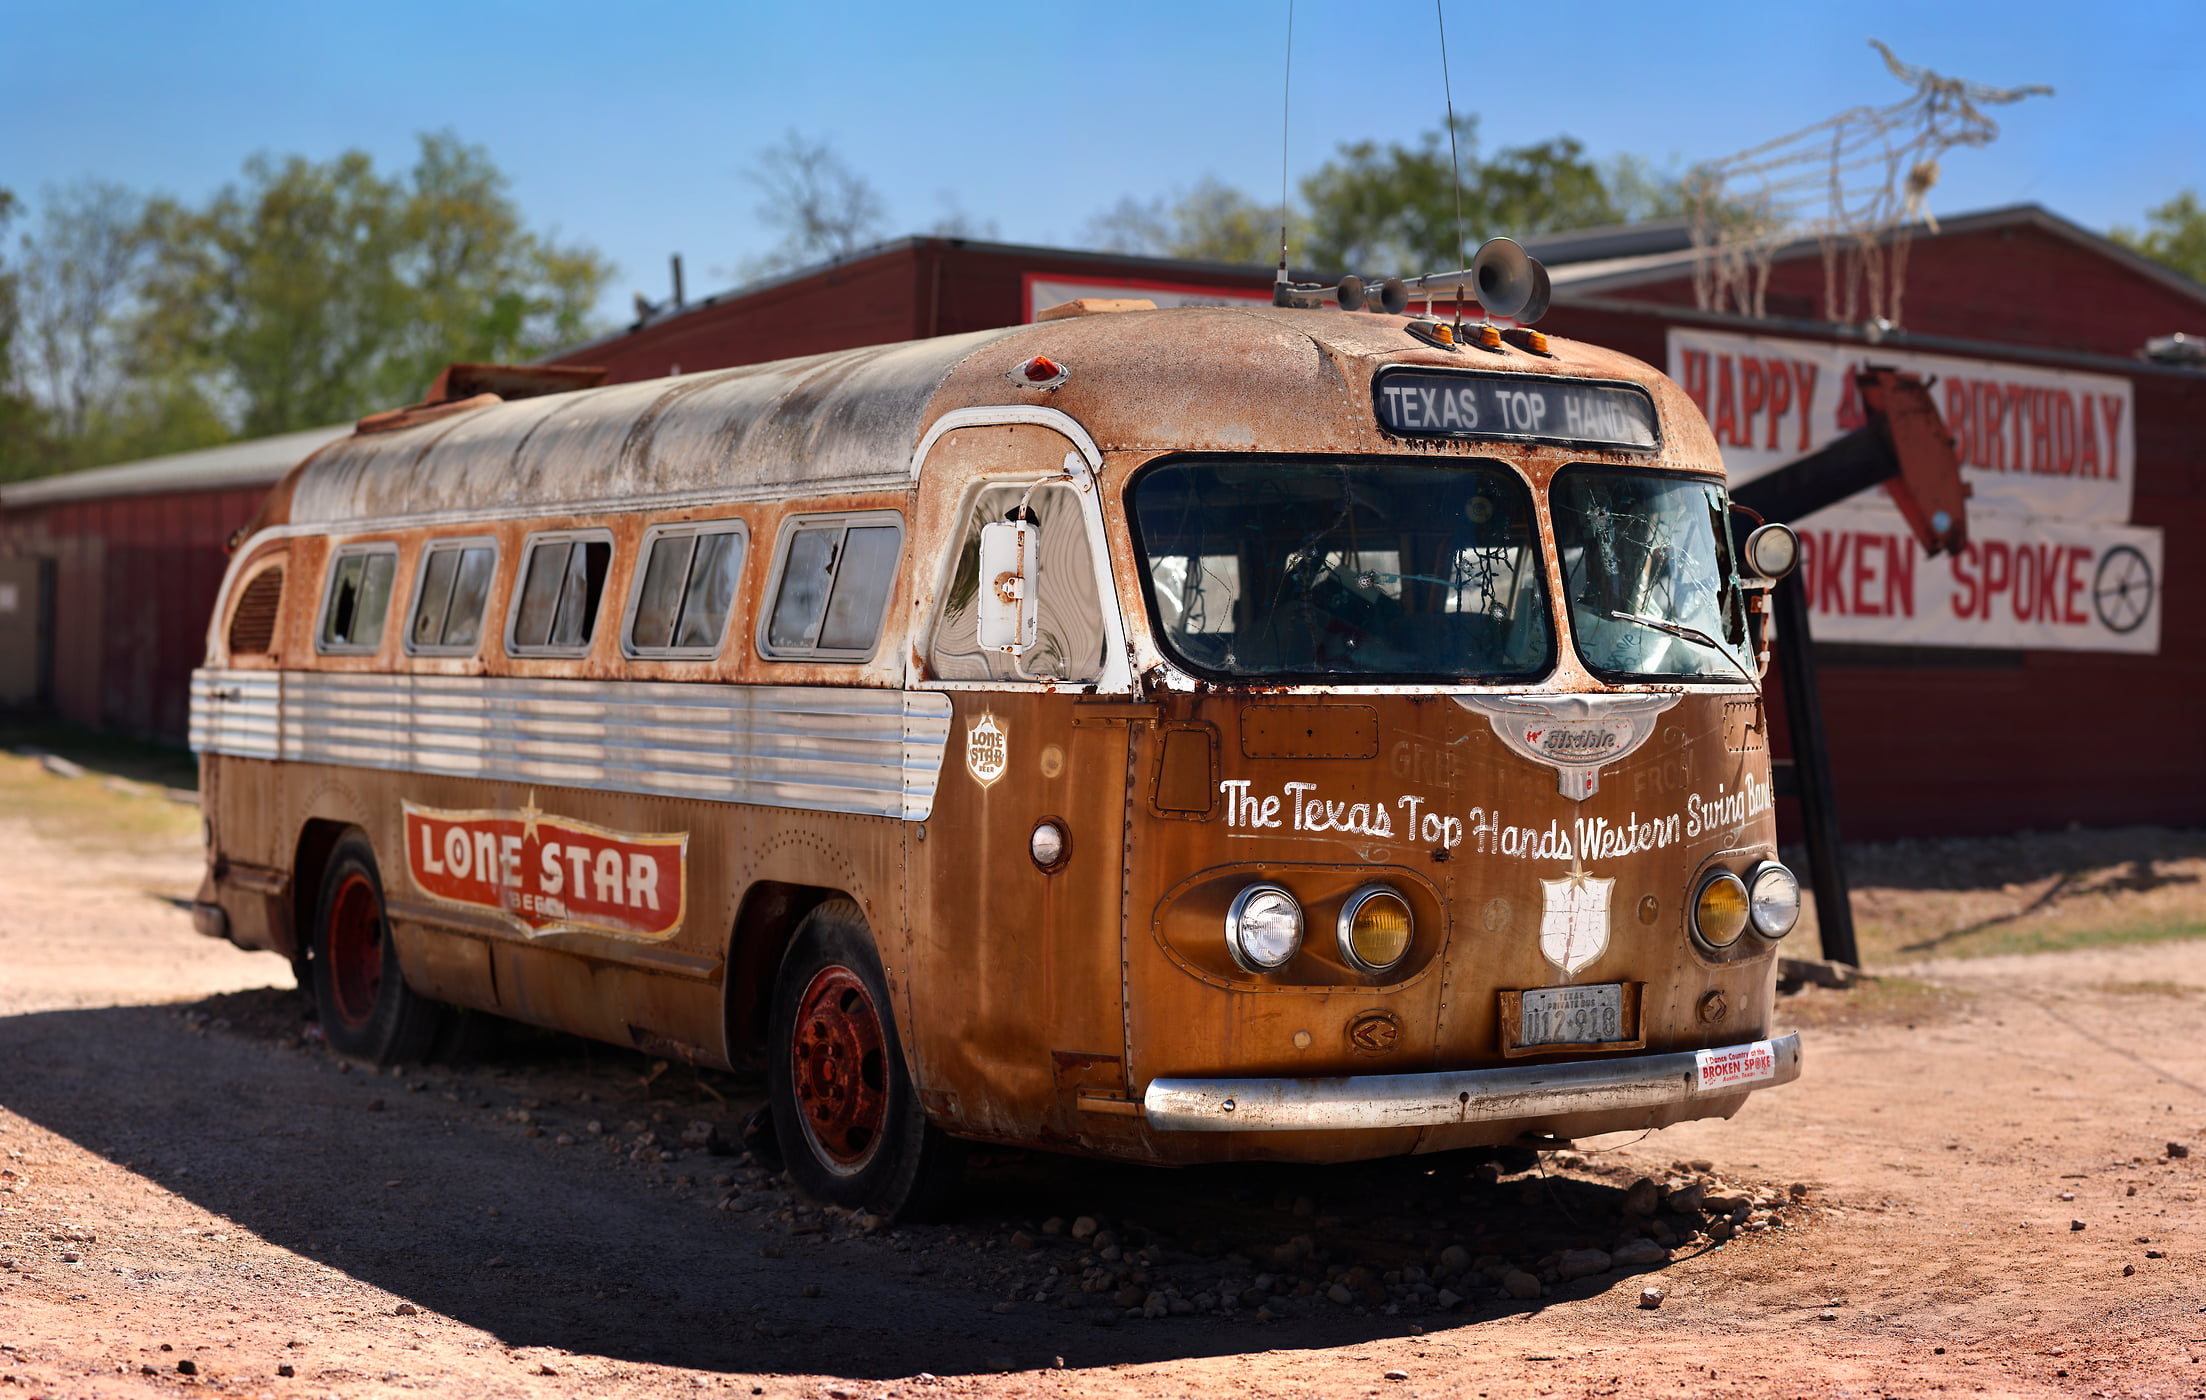 506 megapixels! A very high resolution fine art photograph of an old iconic bus that is emblamatic of Texas culture; VAST photo created by Phil Crawshay in Texas